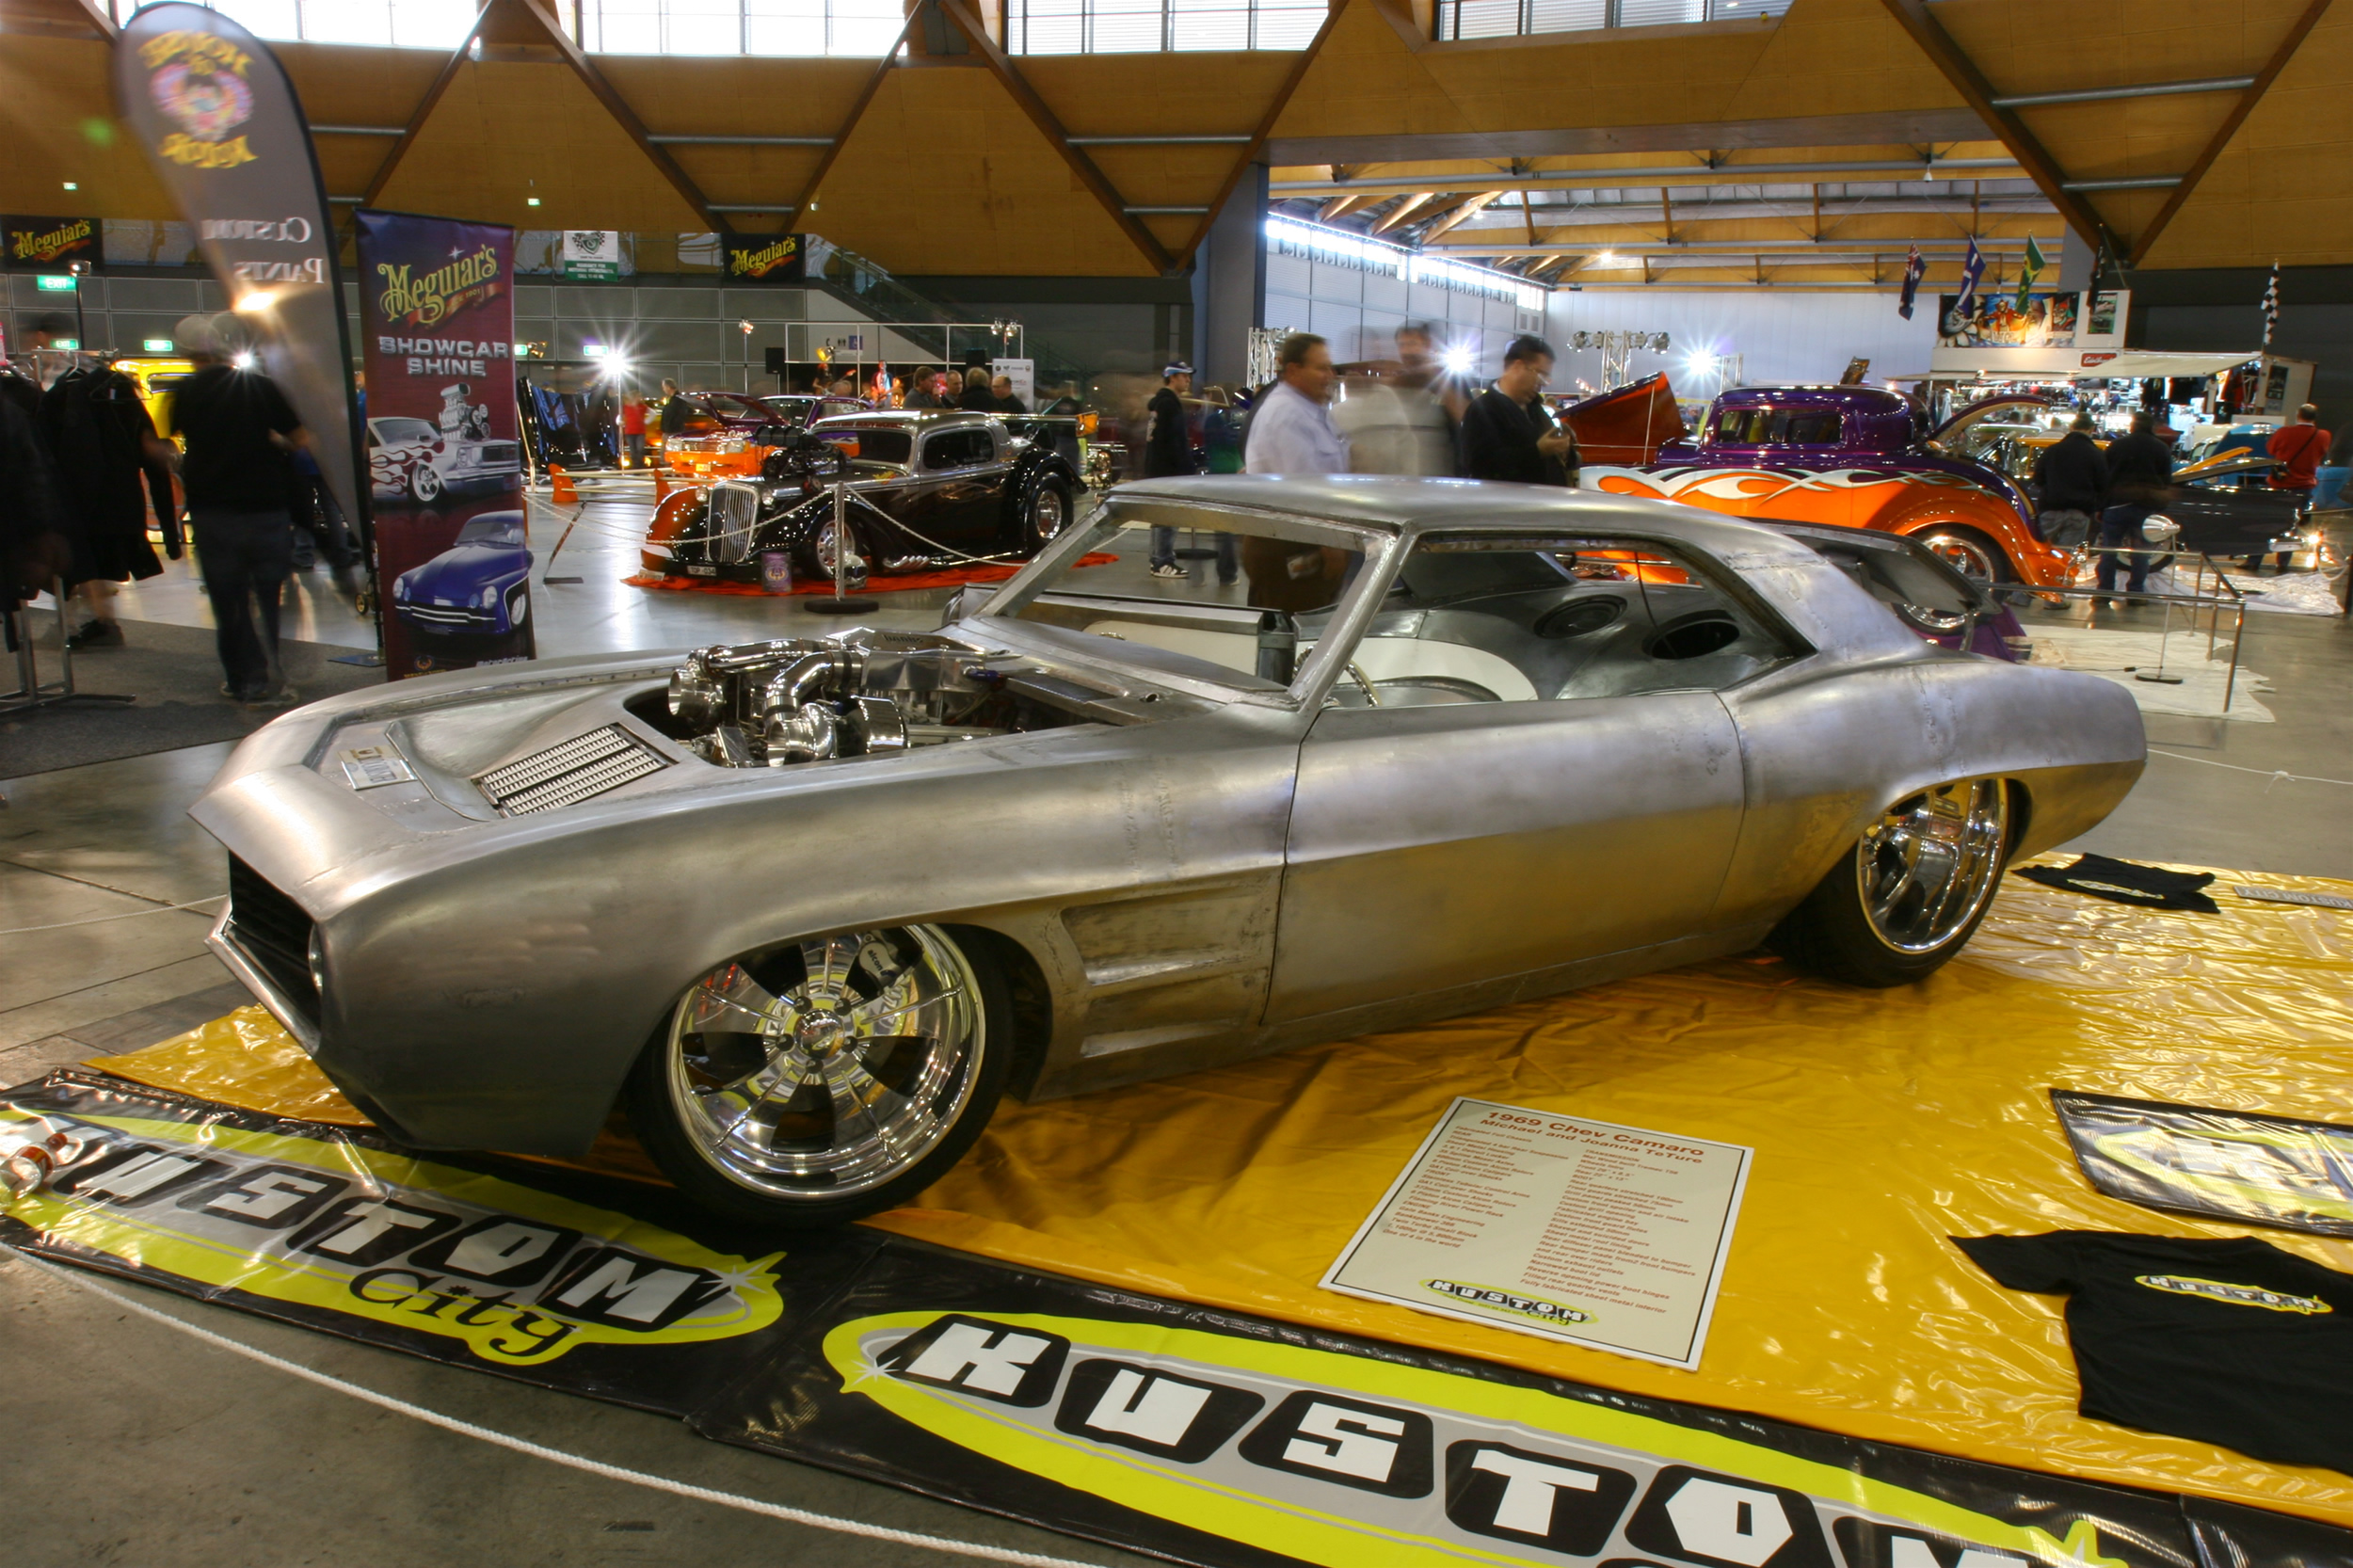 Http Camaropictures Com Heavily Customized 1969 Camaro